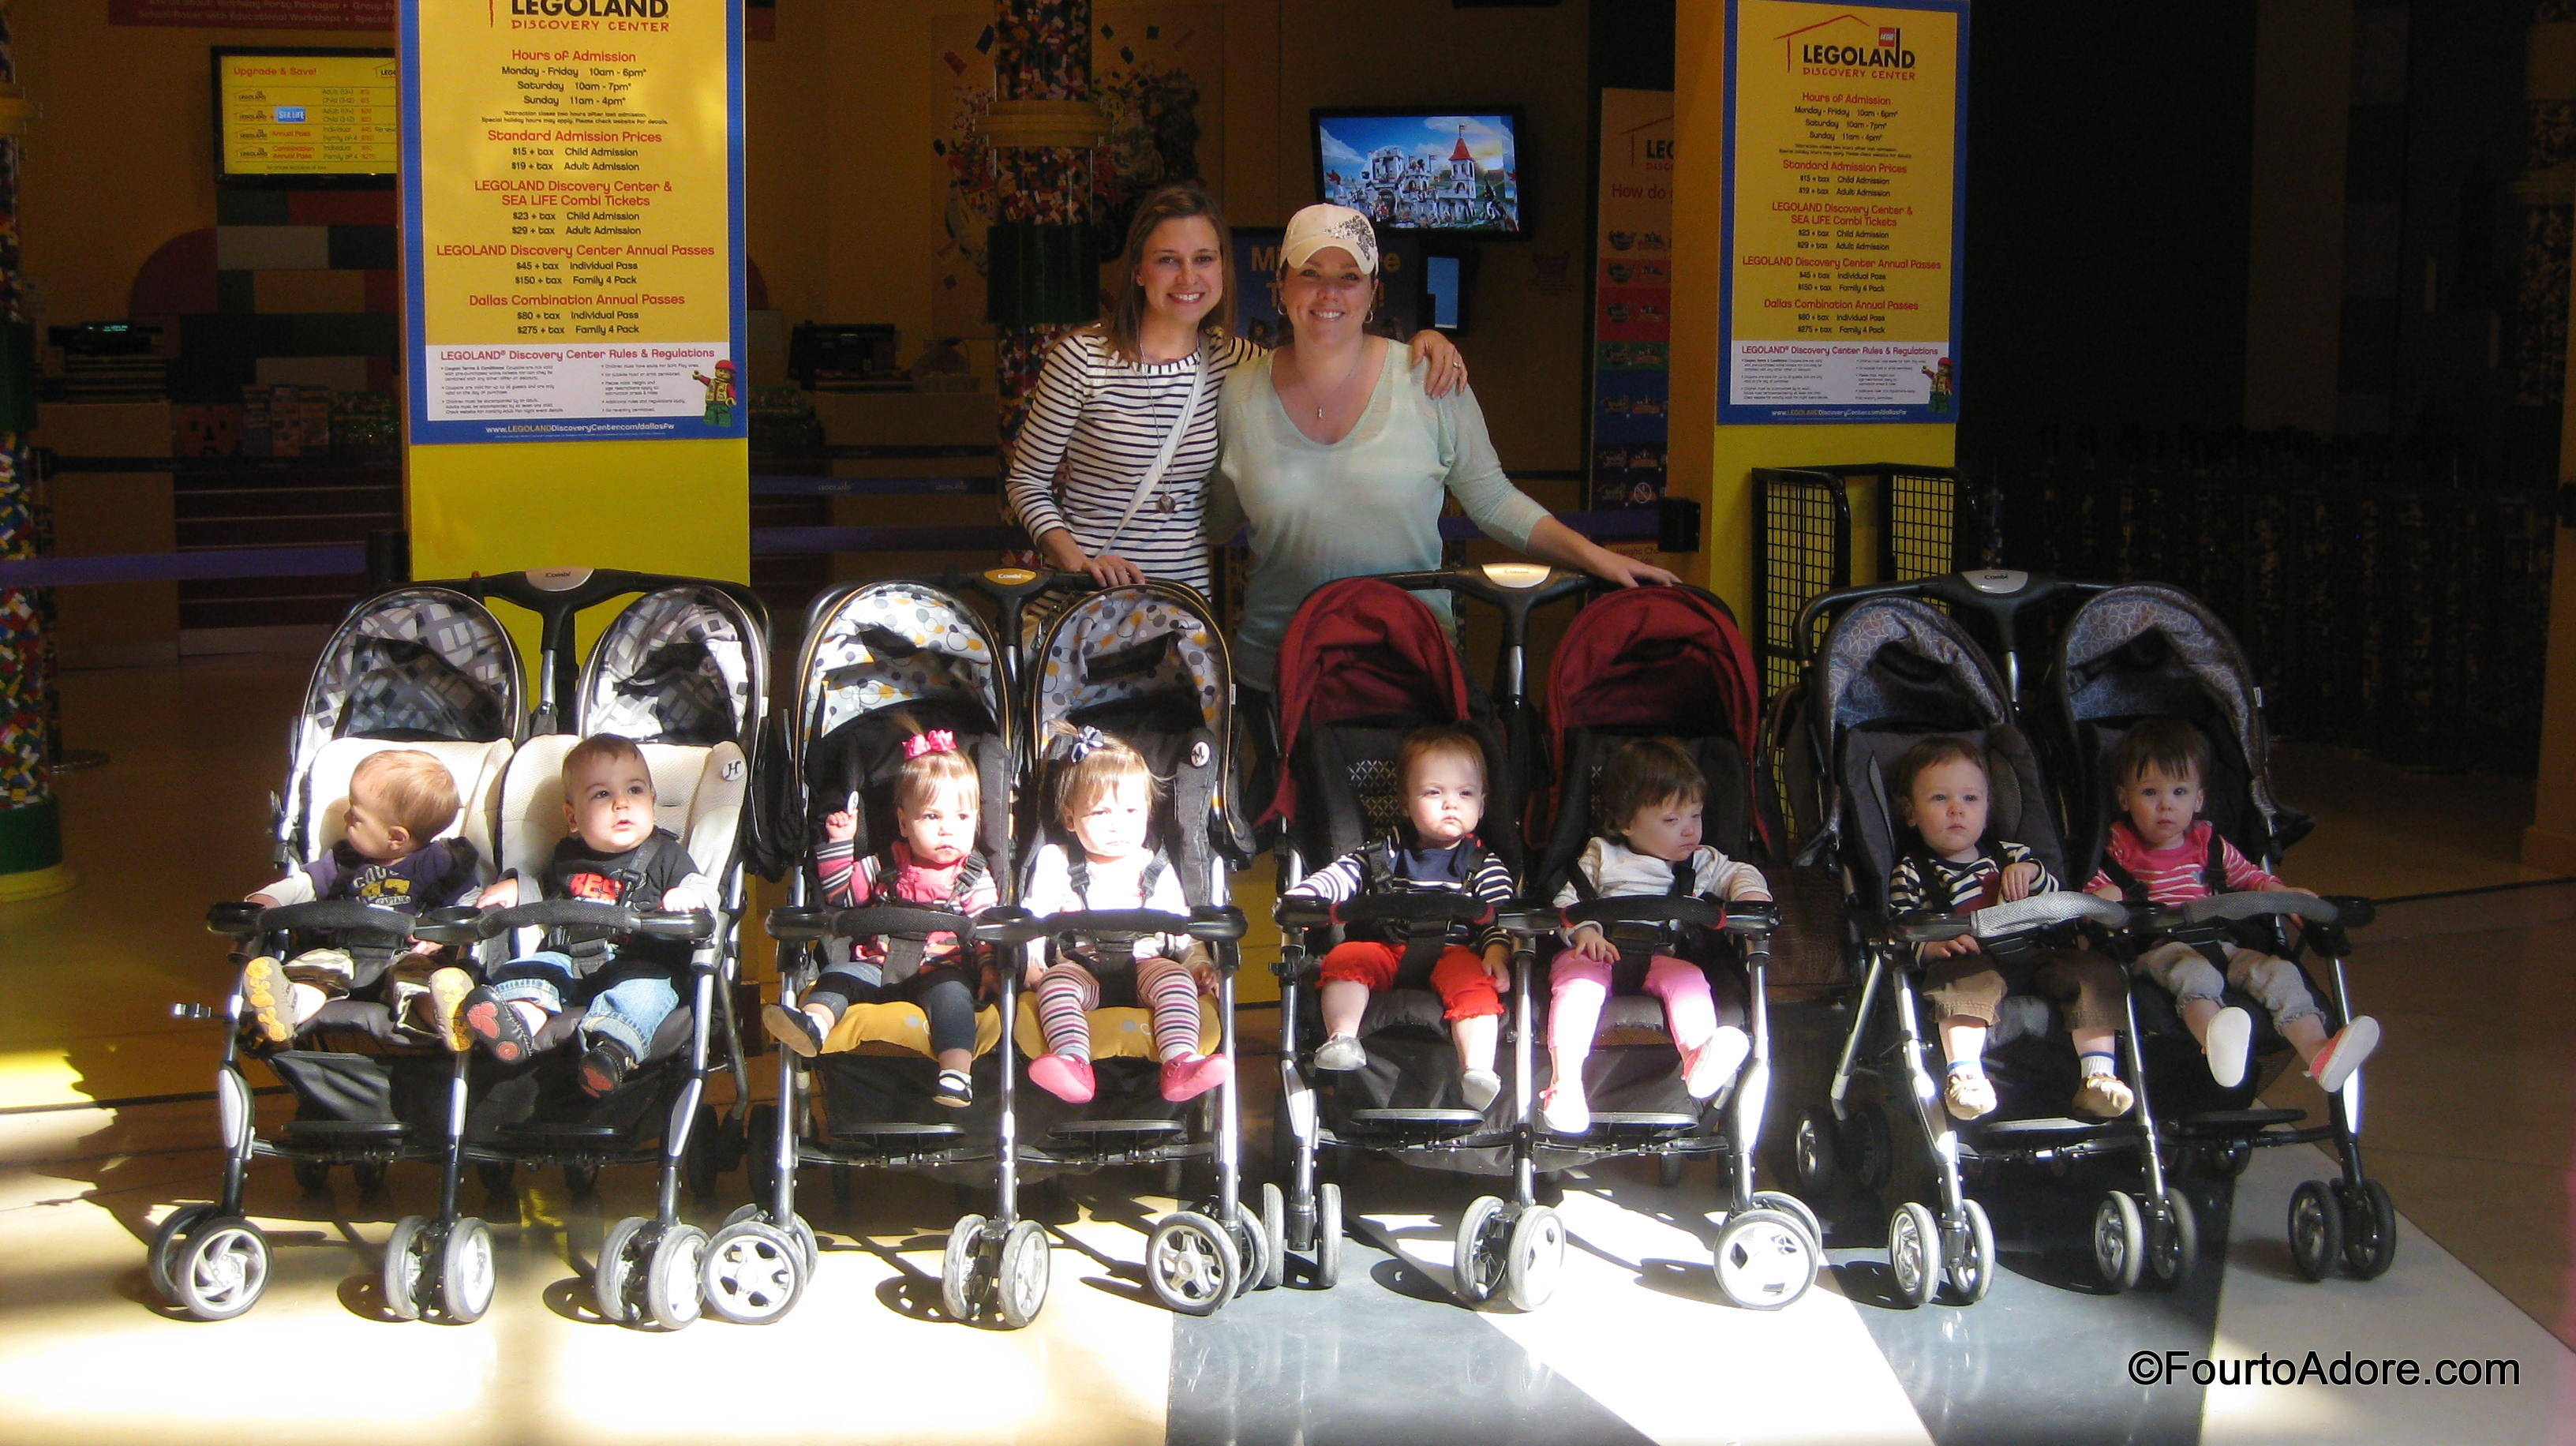 Double Pushchair For Toddlers Adventures In Legoland – Four To Adore